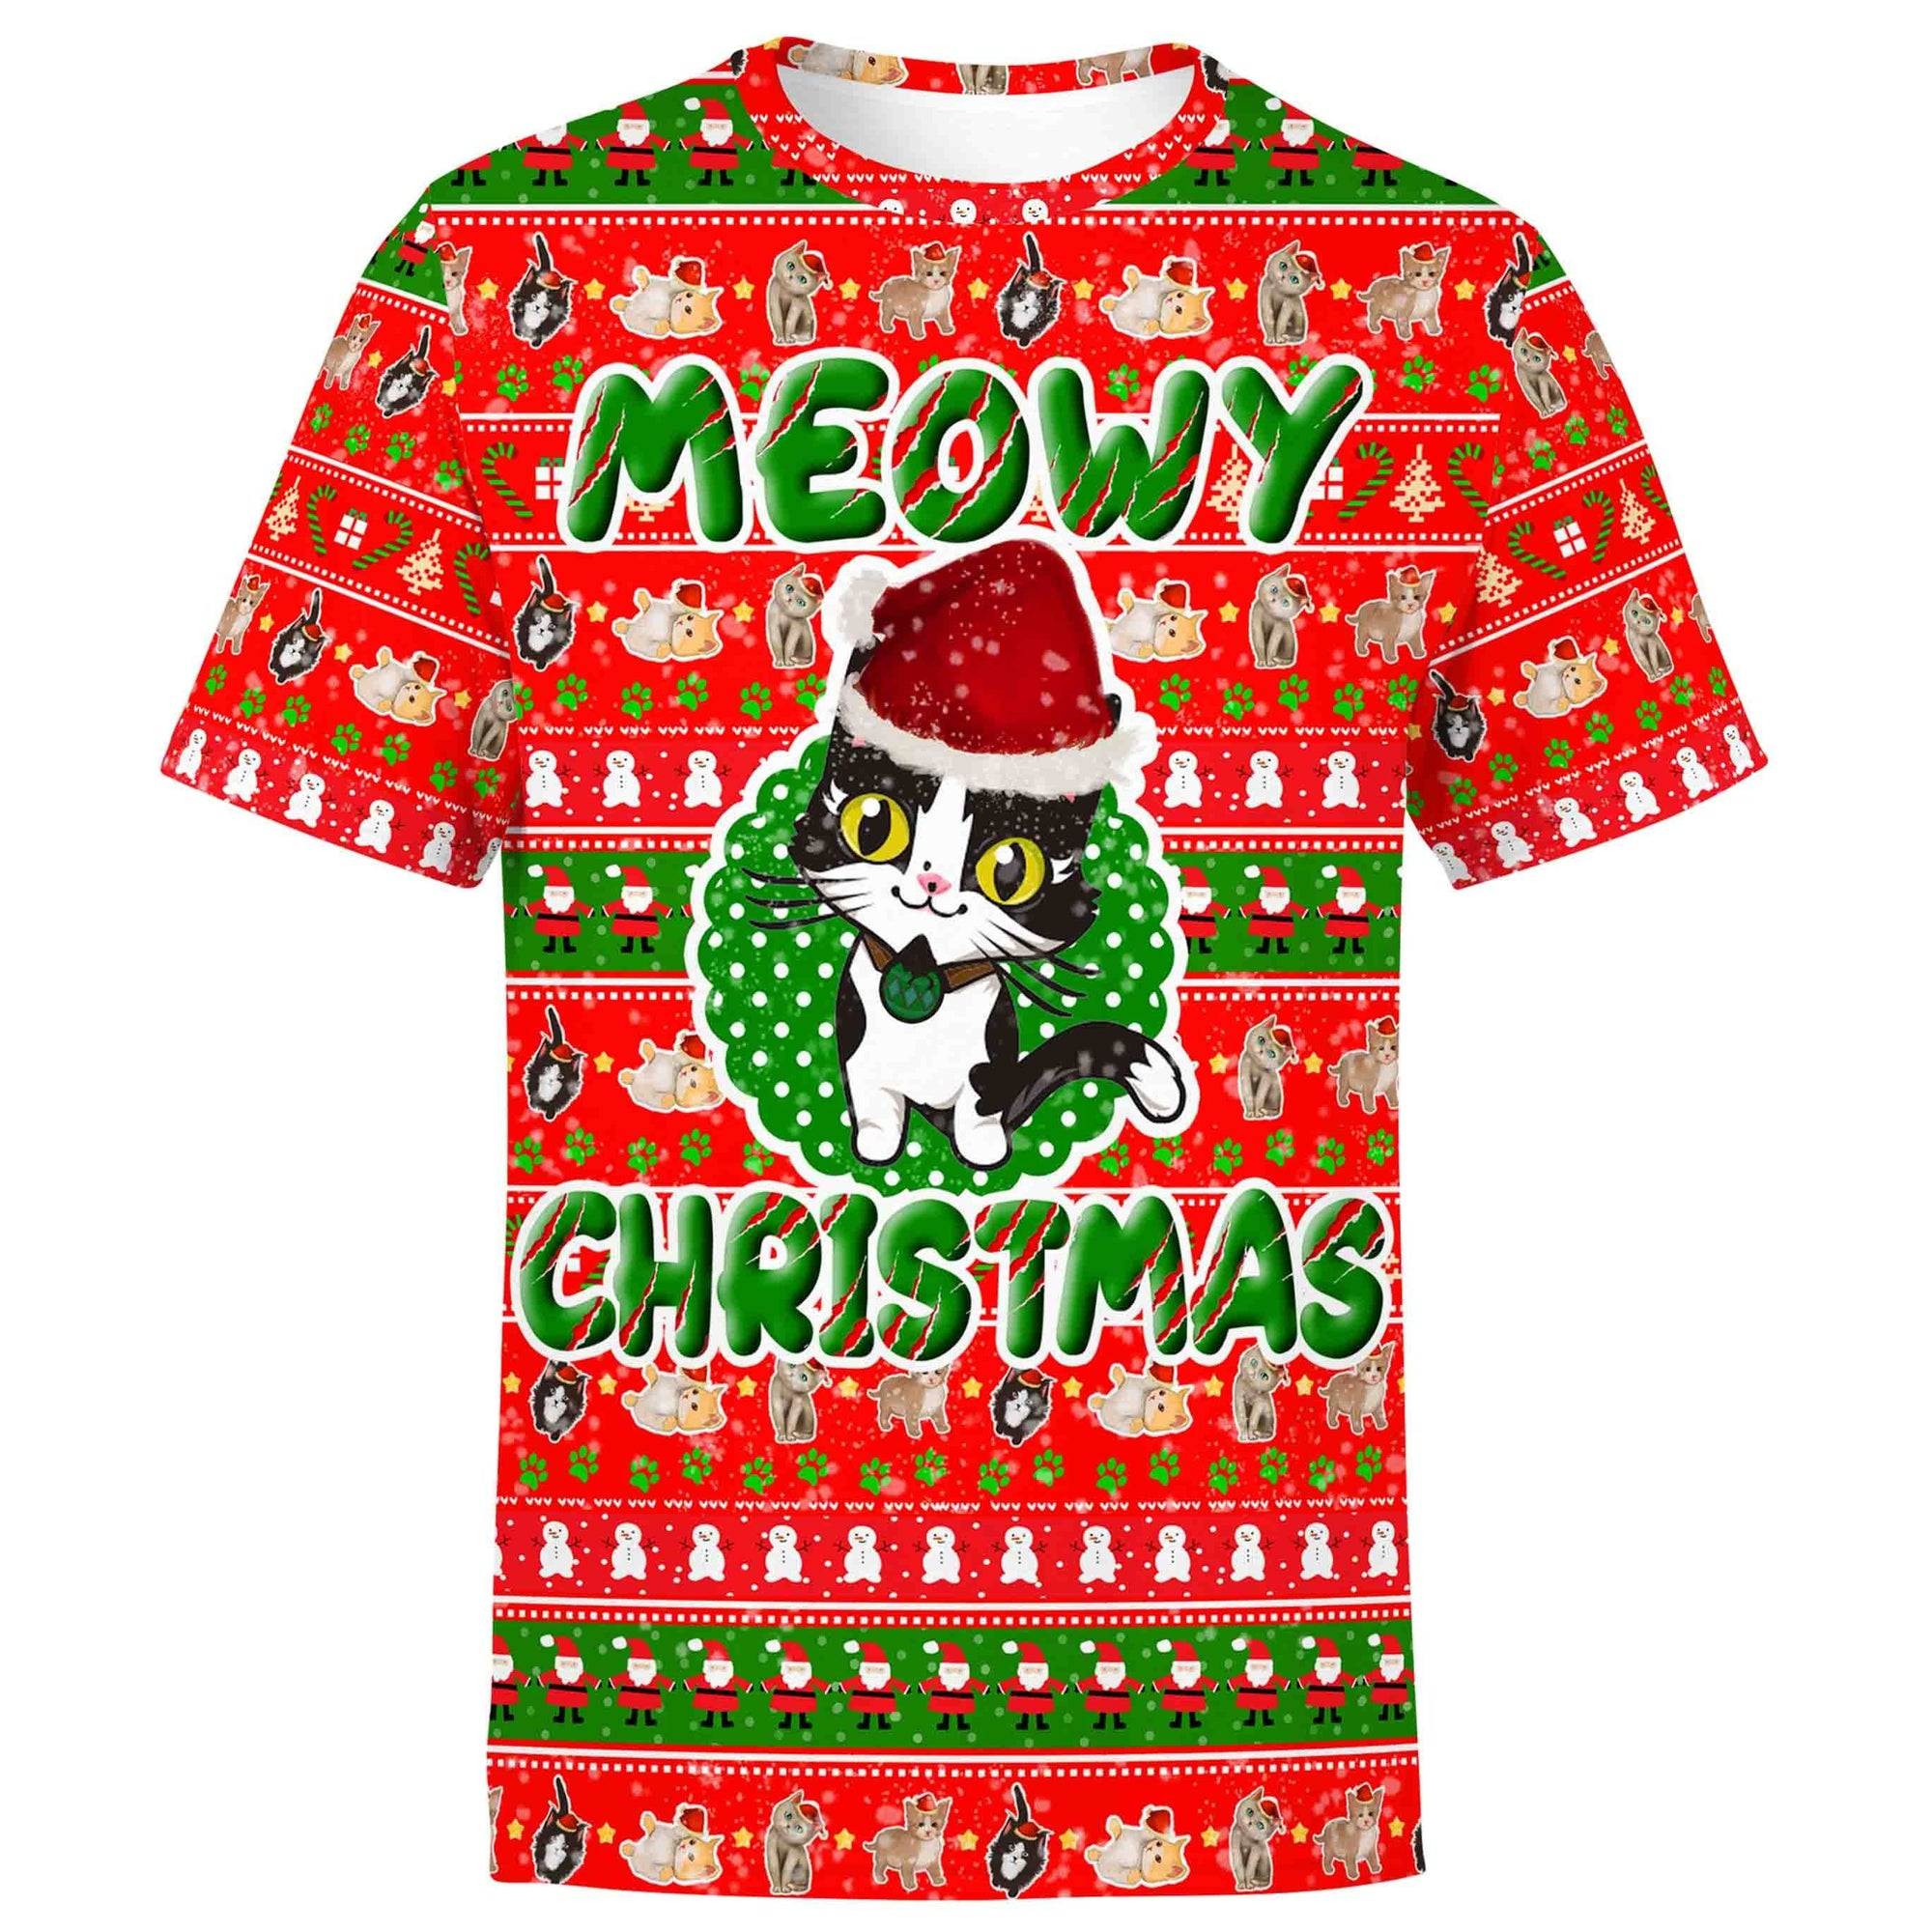 Christmas Shirt S / V1 Meowy Christmas Shirt MEOWY-CHRISTMAS_T-SHIRT-3.0_SM